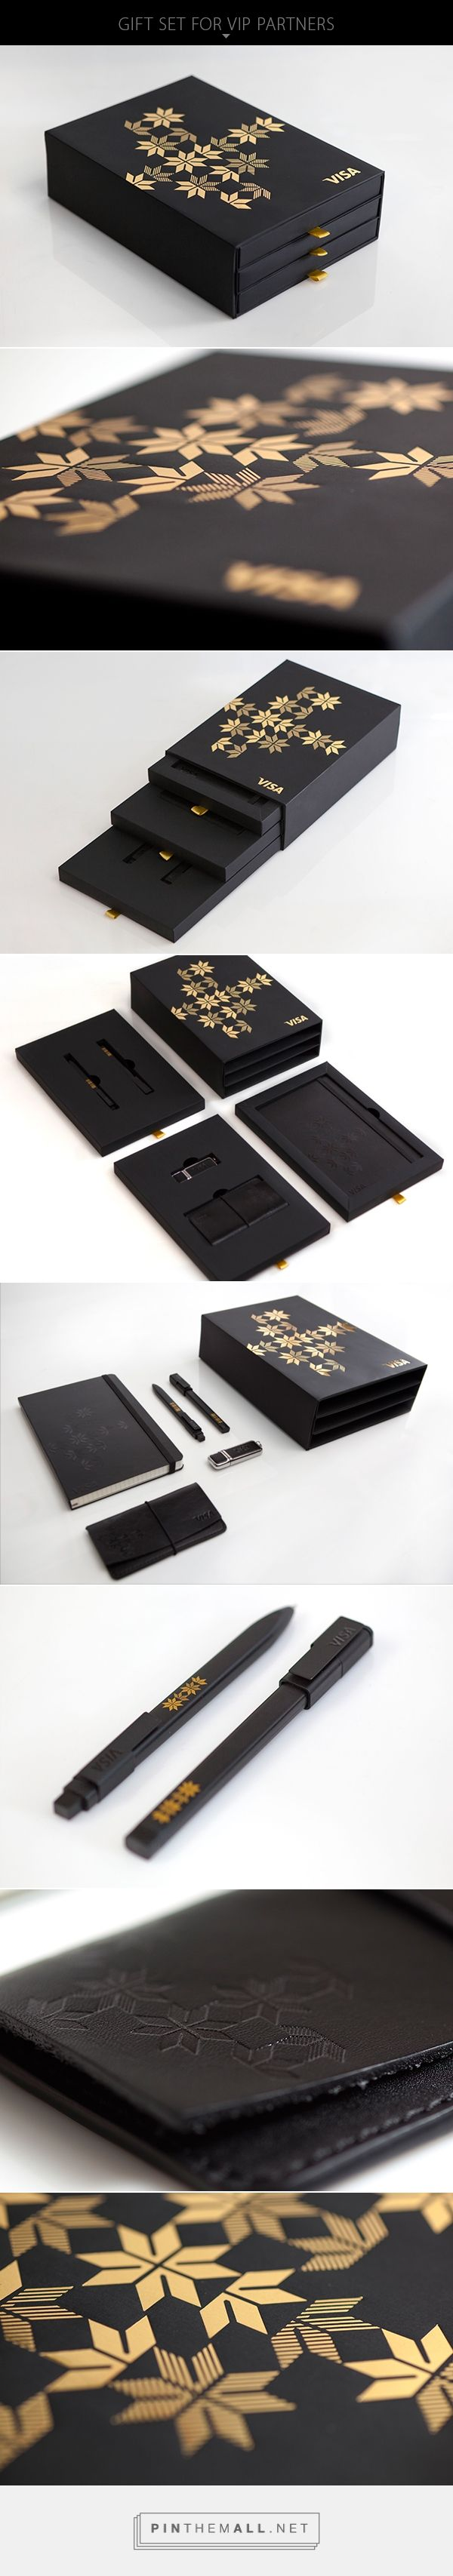 VISA gift set on Packaging Design Served... - a grouped images picture - Pin Them All